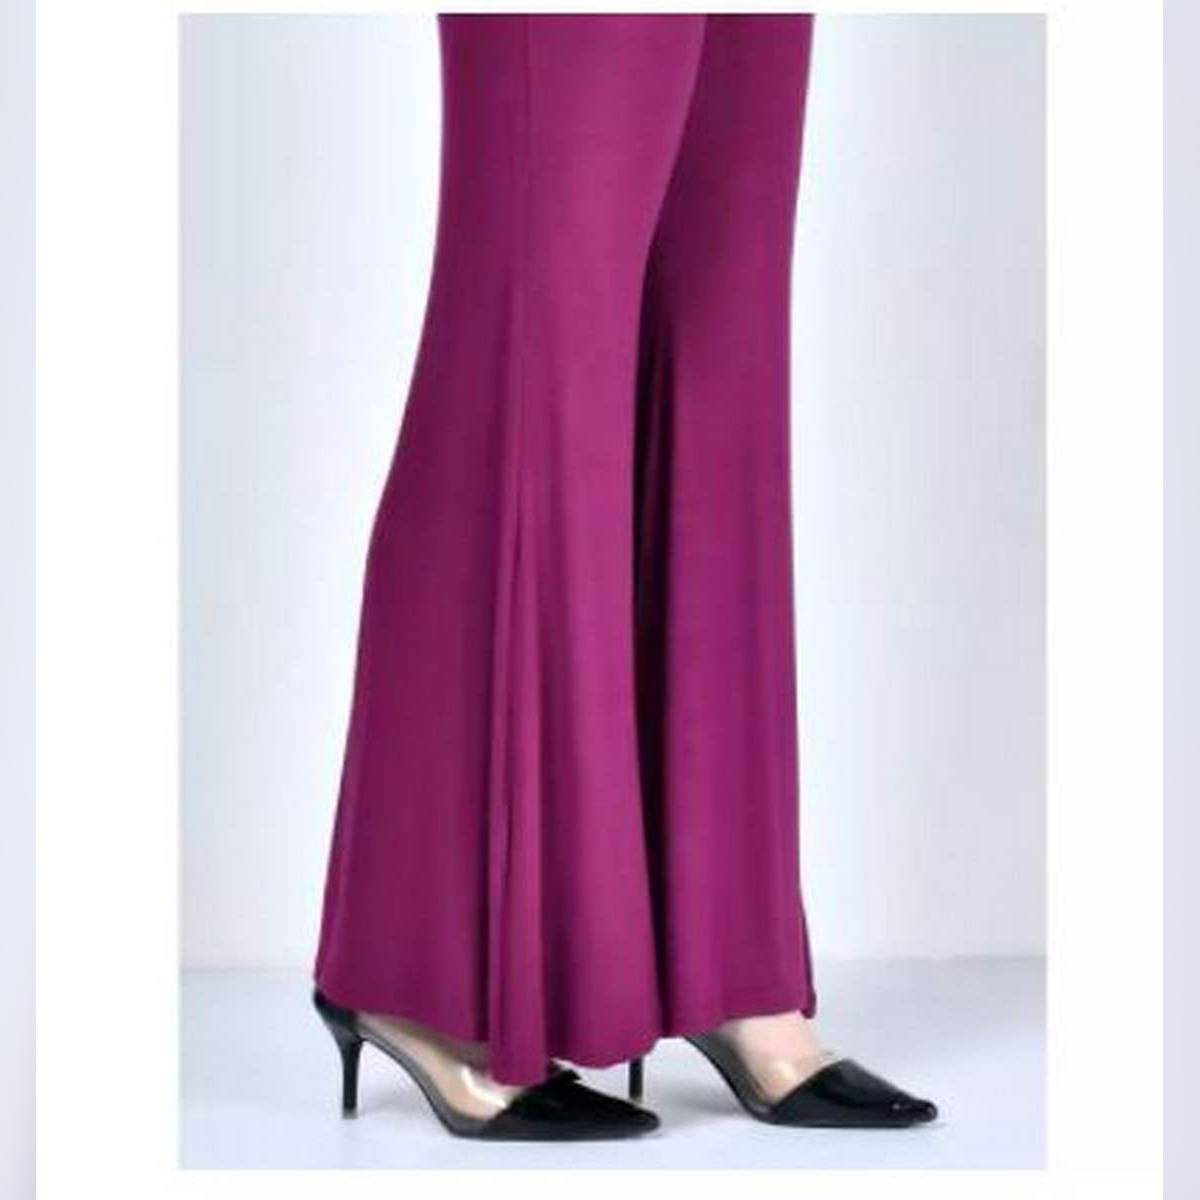 Queen Stitched Dark-Pink Jersey Plazzo Pant for women